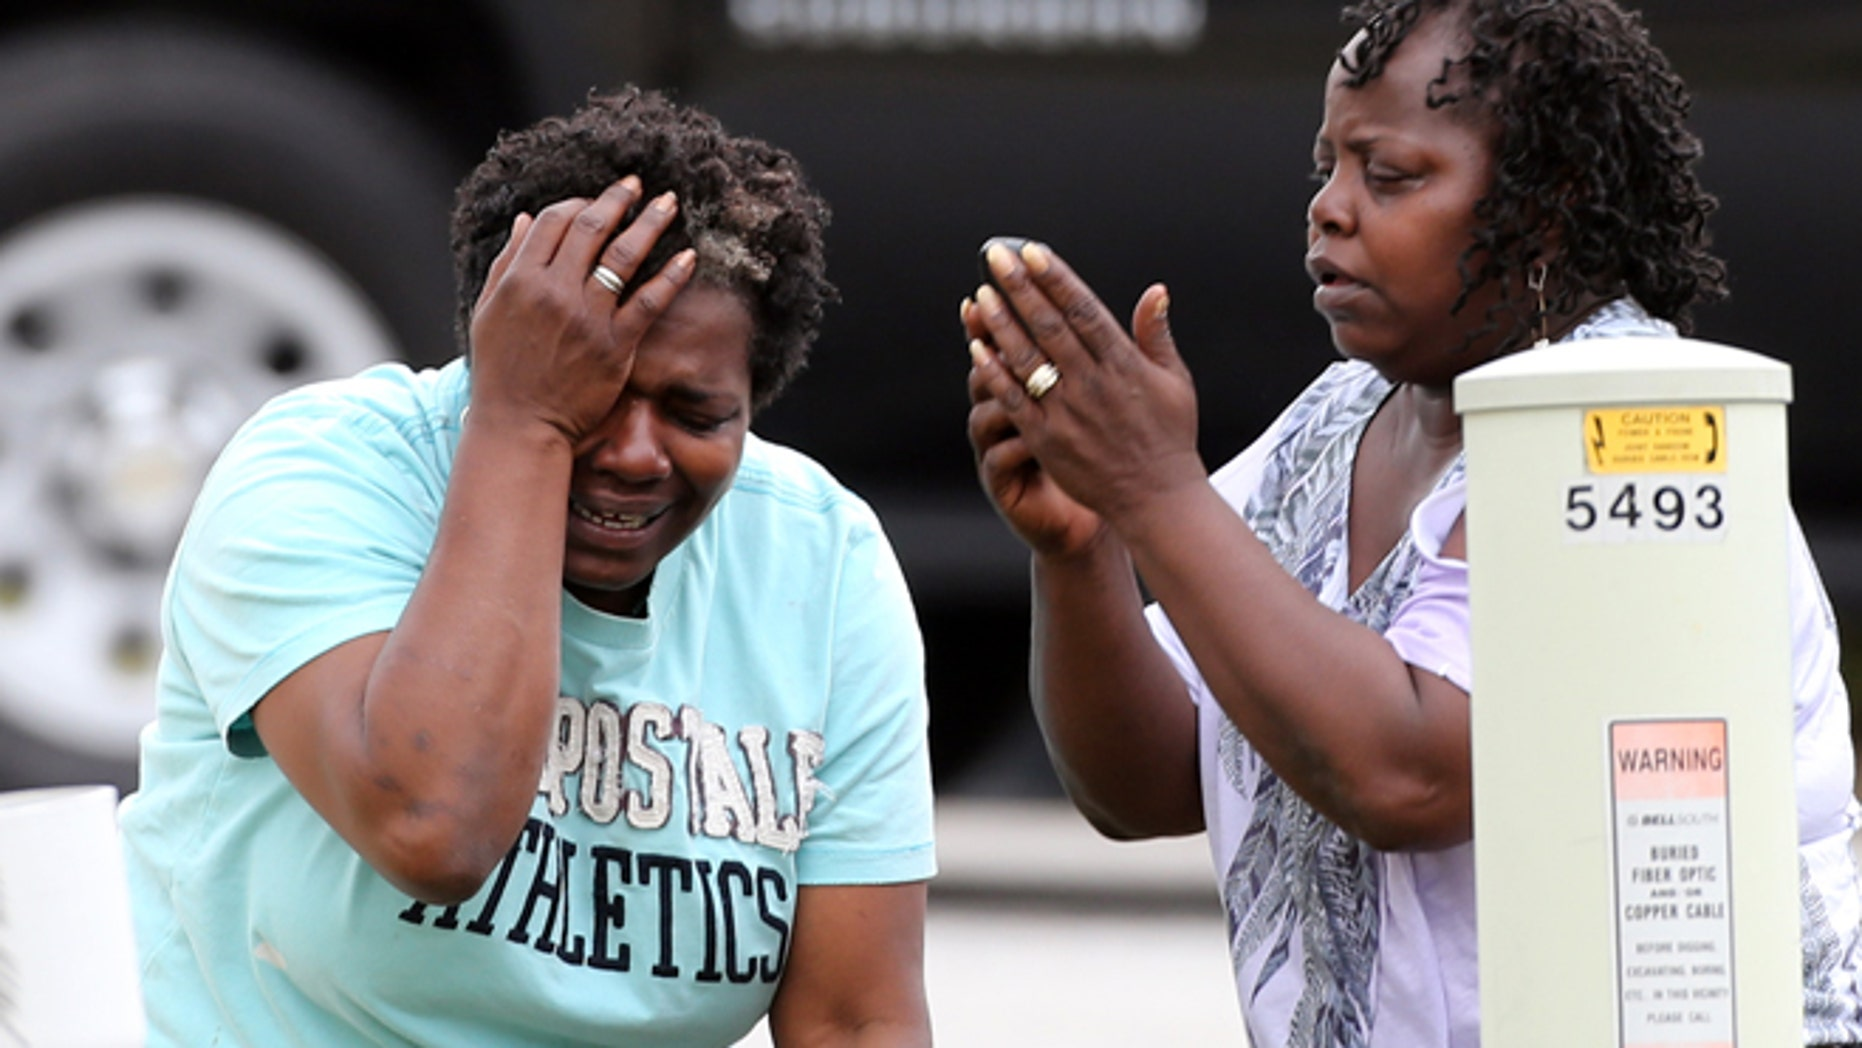 April 24: After finding out that a two-year-old had been killed by his South Fulton family's pit bull, a relative grieves and a family friend makes a call in an unincorporated area in south Fulton County near Union City, Ga.